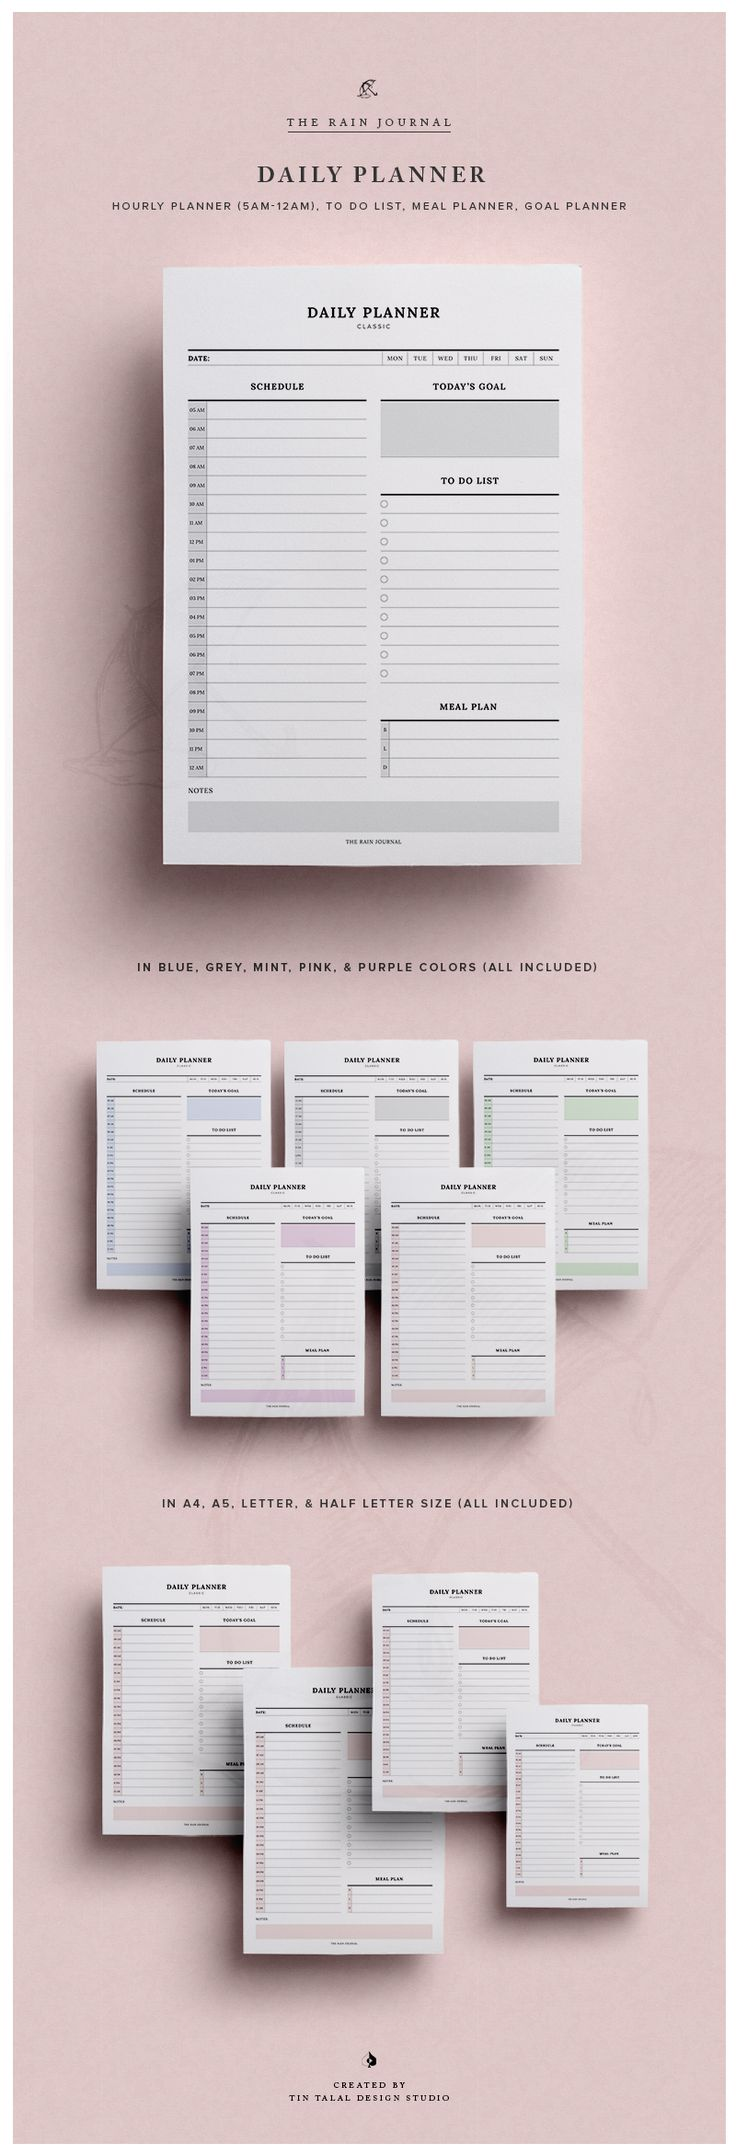 Daily Planner Printable w/ Hourly Planner, Meal Planner, & To Do List   Fit for Kikki K Large and A5 Filofax. This To Do List Planners can be inserted in your favorite planner!